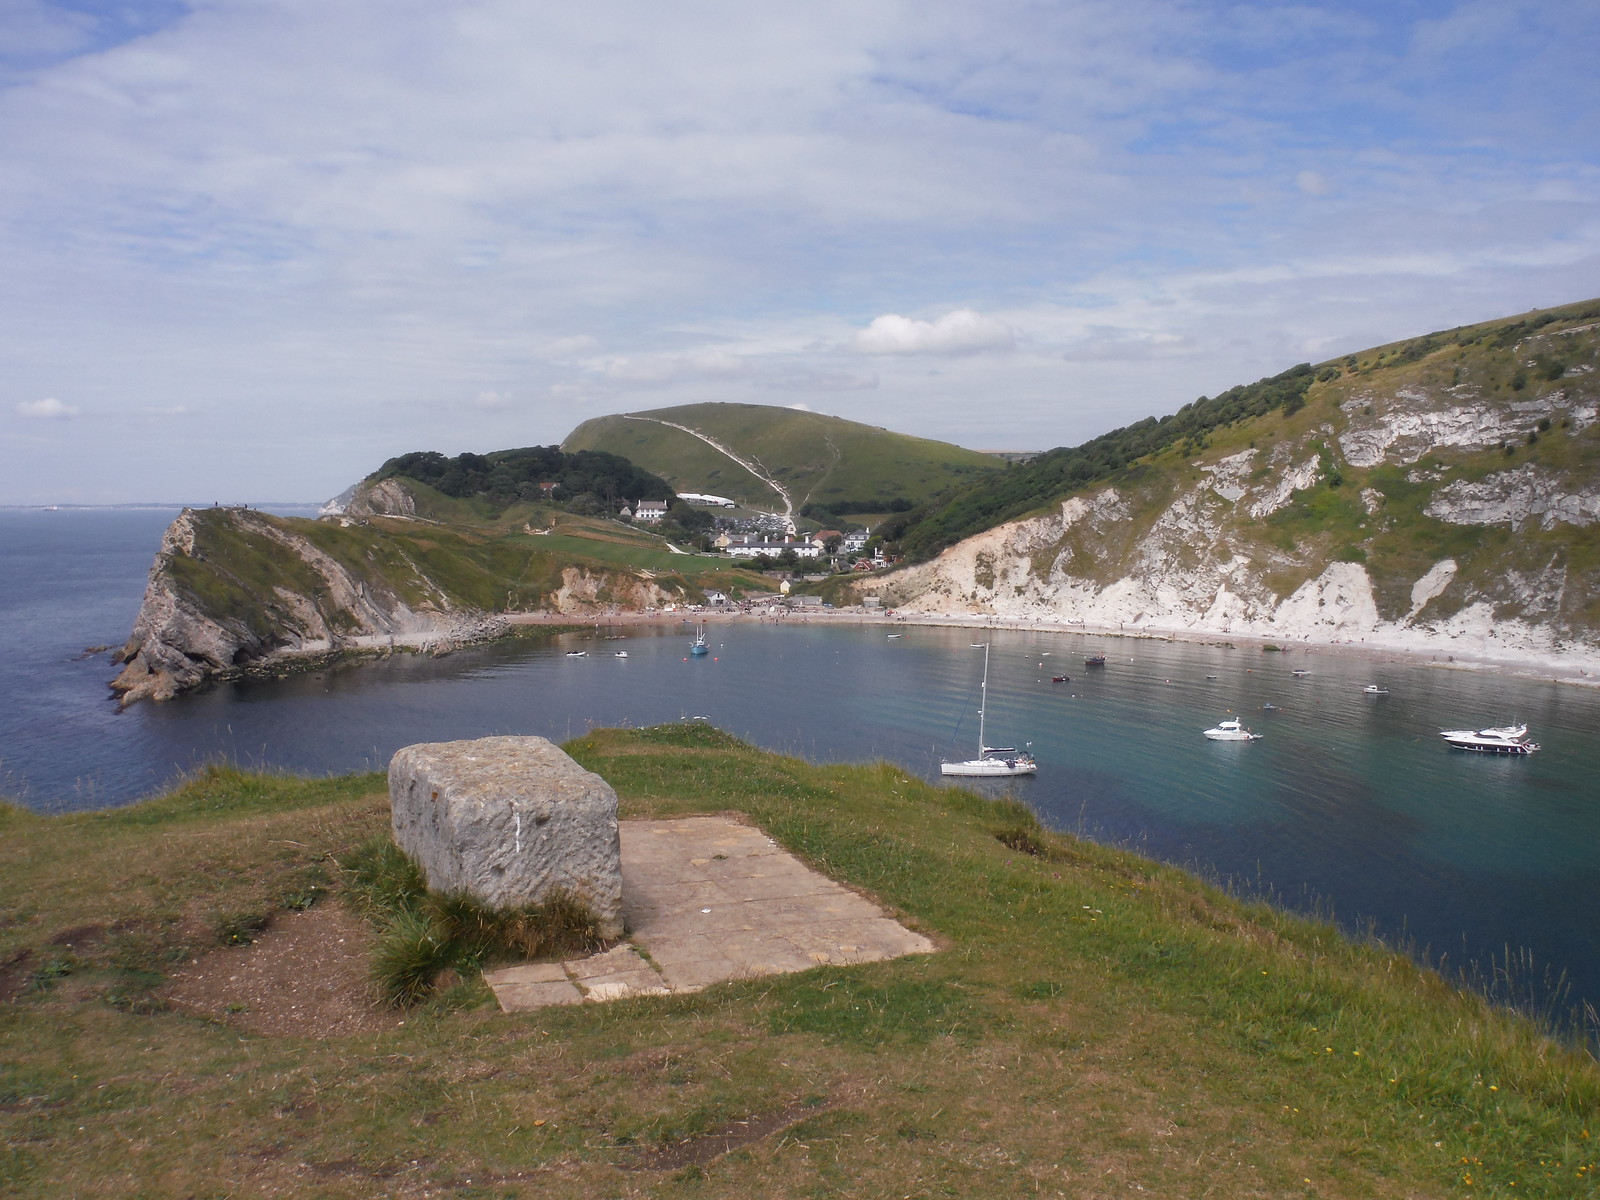 Lulworth Cove and Hambury Tout, from Pepler's Point SWC Walk 54 - Lulworth Cove Circular (via Tyneham and Durdle Door)